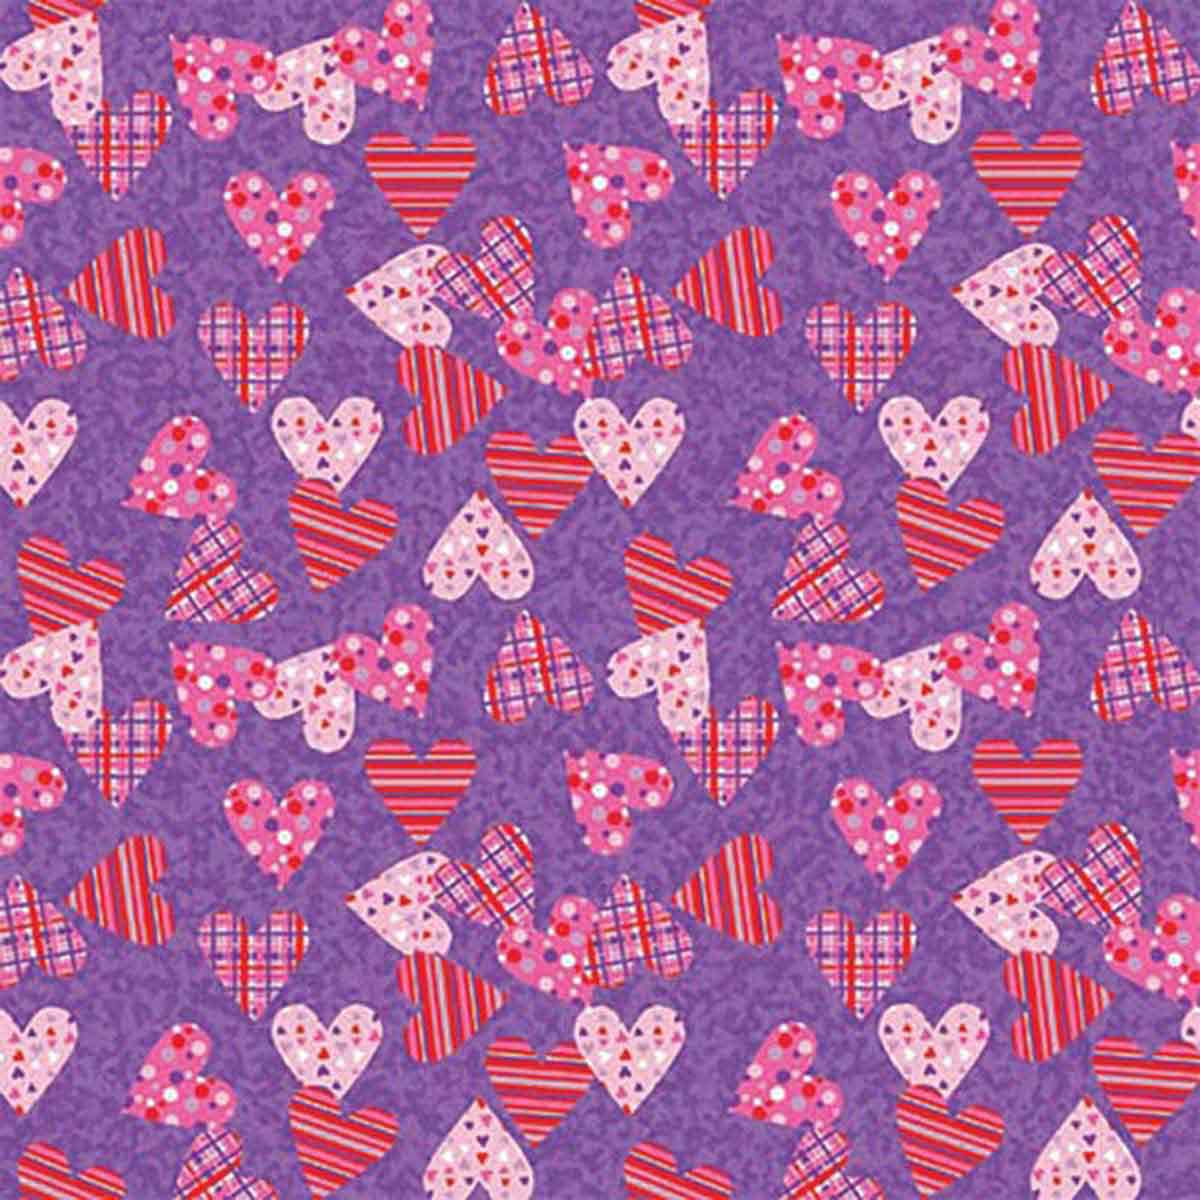 Plaid & Polka Dot Hearts Dog Bandanna Square Poly/Cotton Blend by Fancy Finishes